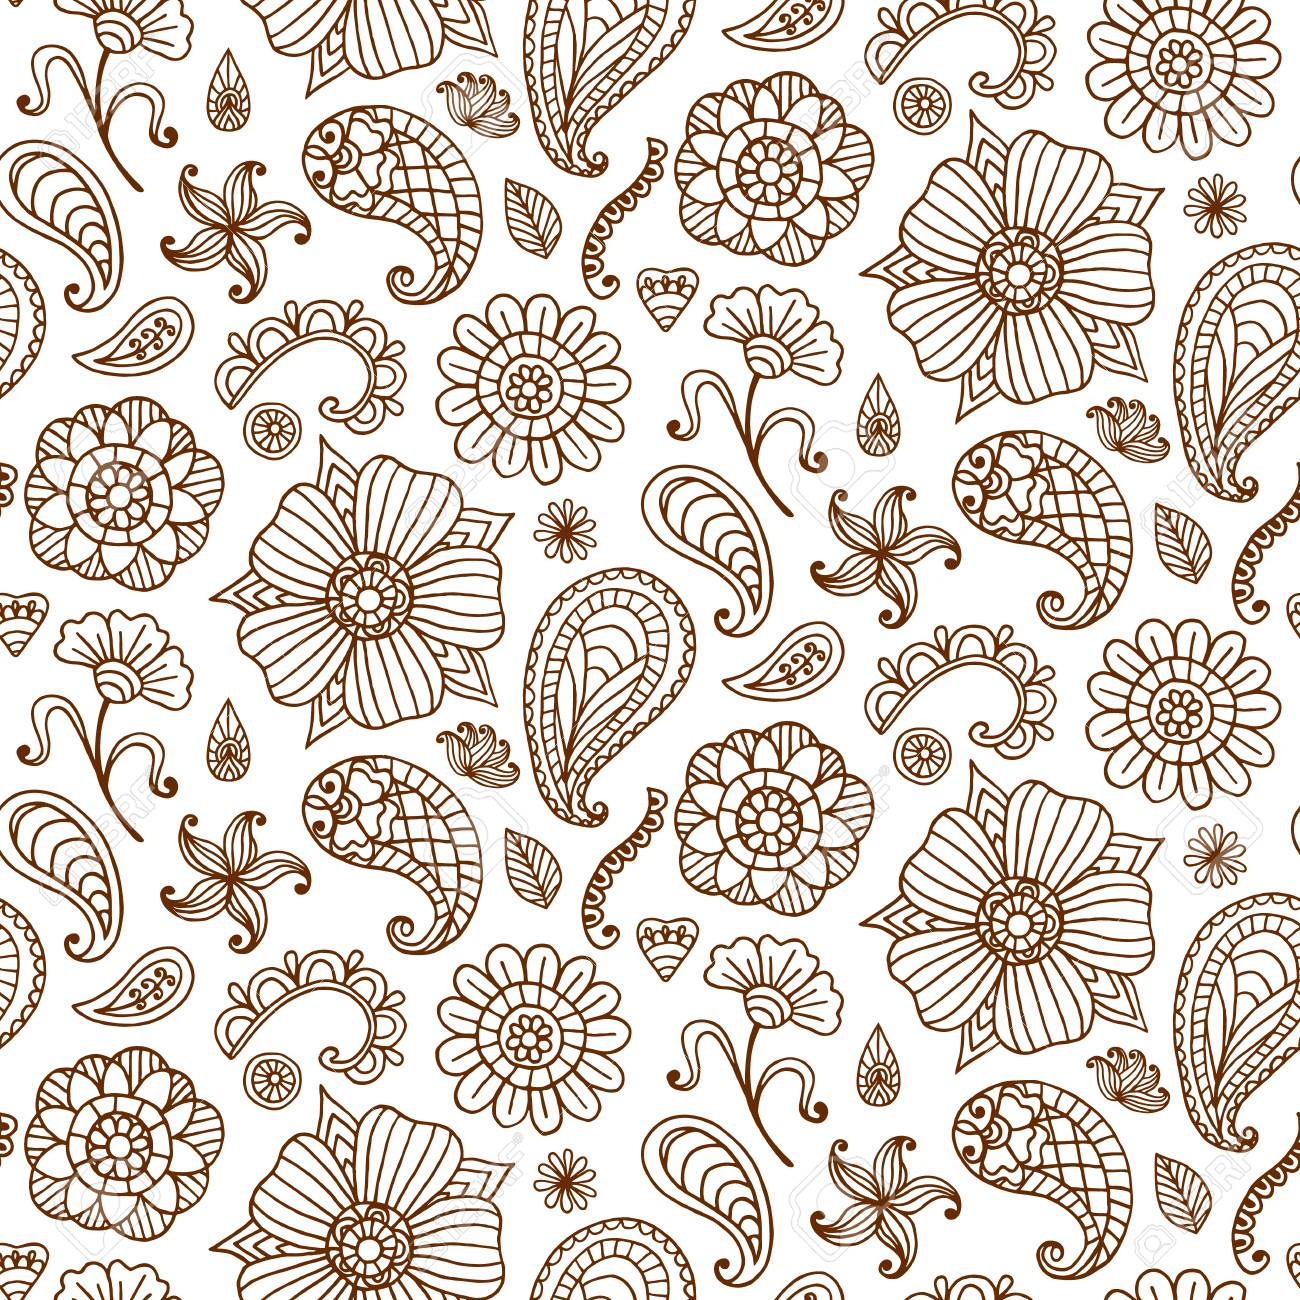 Seamless pattern with vector henna tattoo doodles set. Indian paisley,  floral asian ethnic design